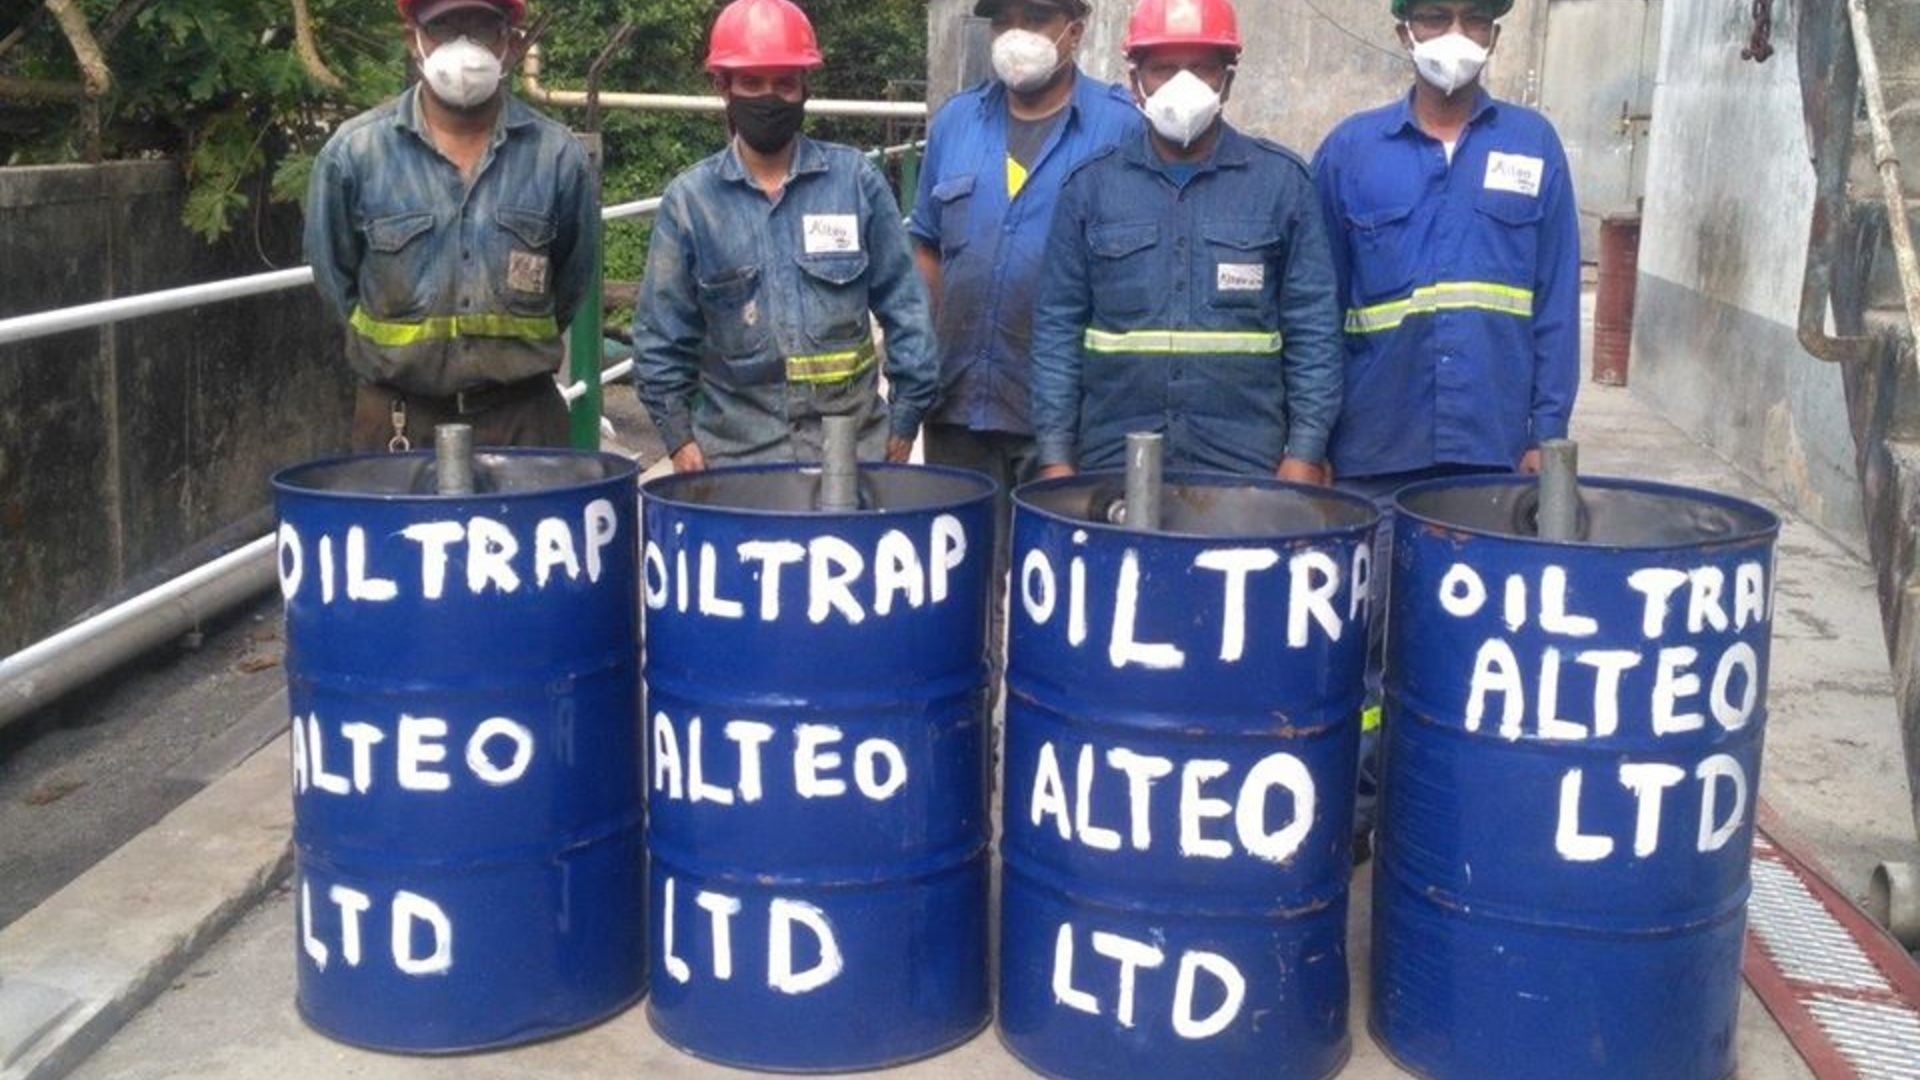 Alteo participates in the national effort to supply cane trash to fight oil spill from the MV Wakashio